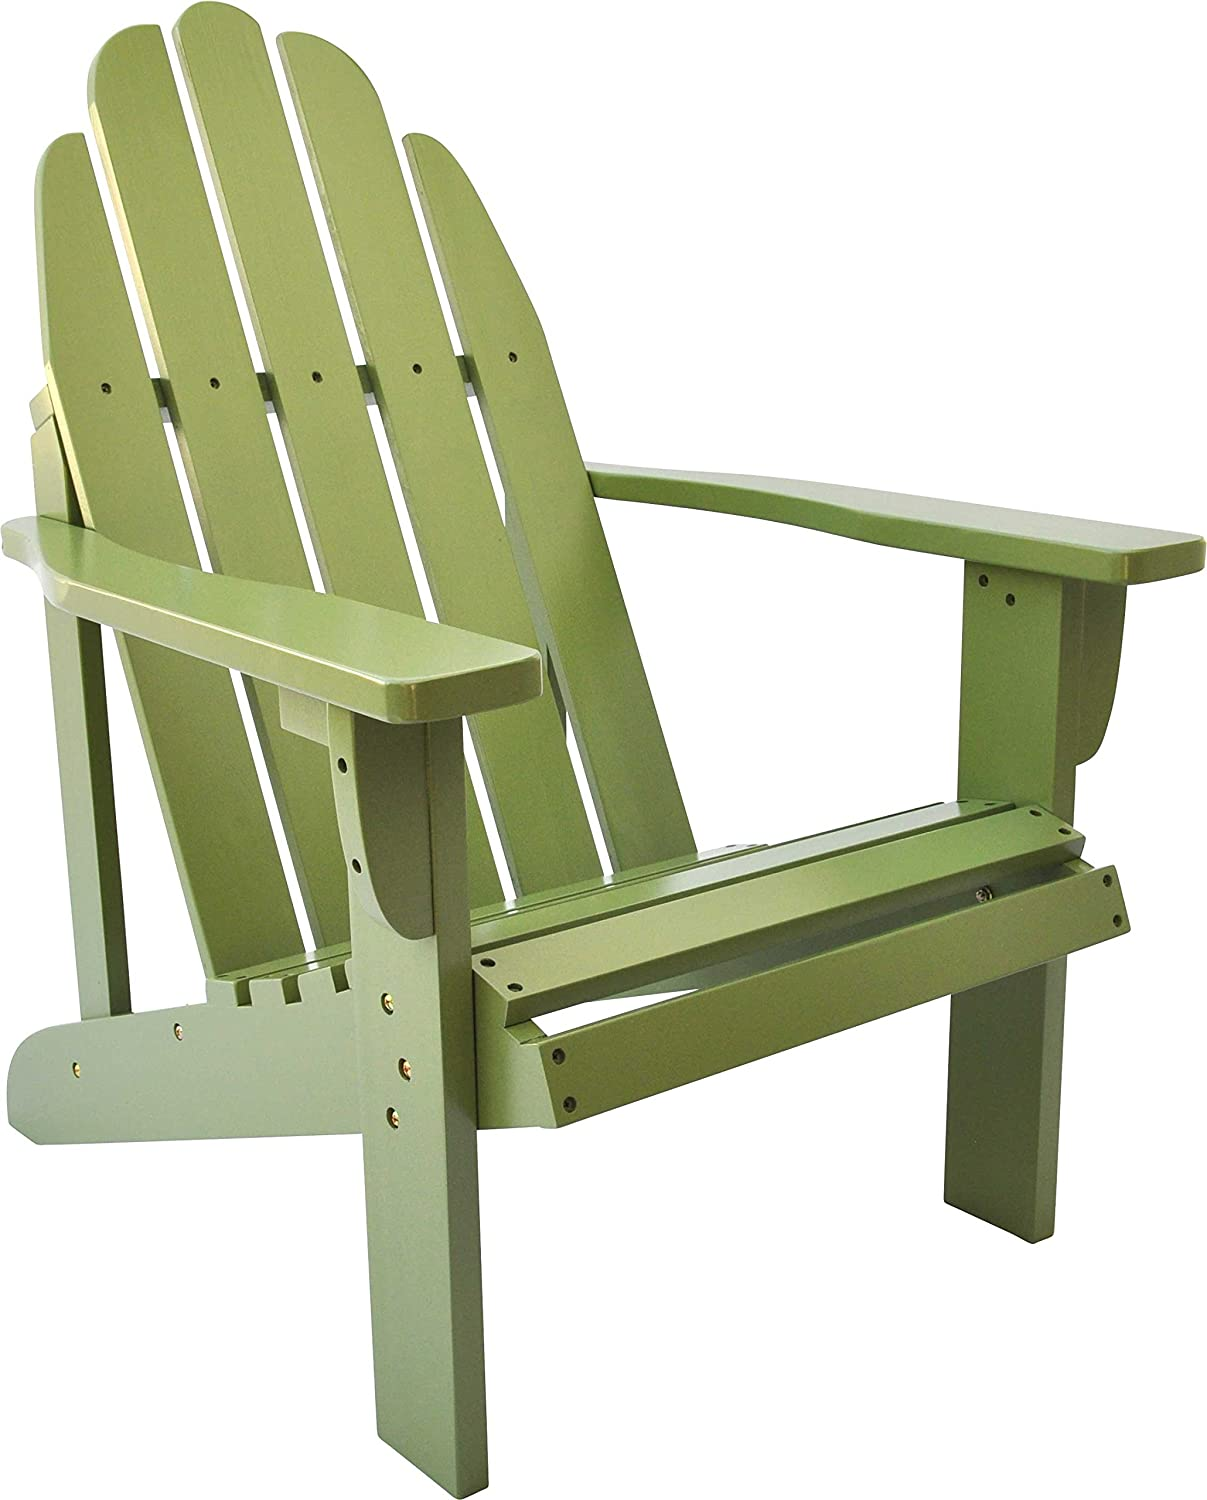 Amazon com   Shine Company Catalina Adirondack Chair  White   Patio  Lawn    GardenAmazon com   Shine Company Catalina Adirondack Chair  White  . Adirondack Furniture Company. Home Design Ideas